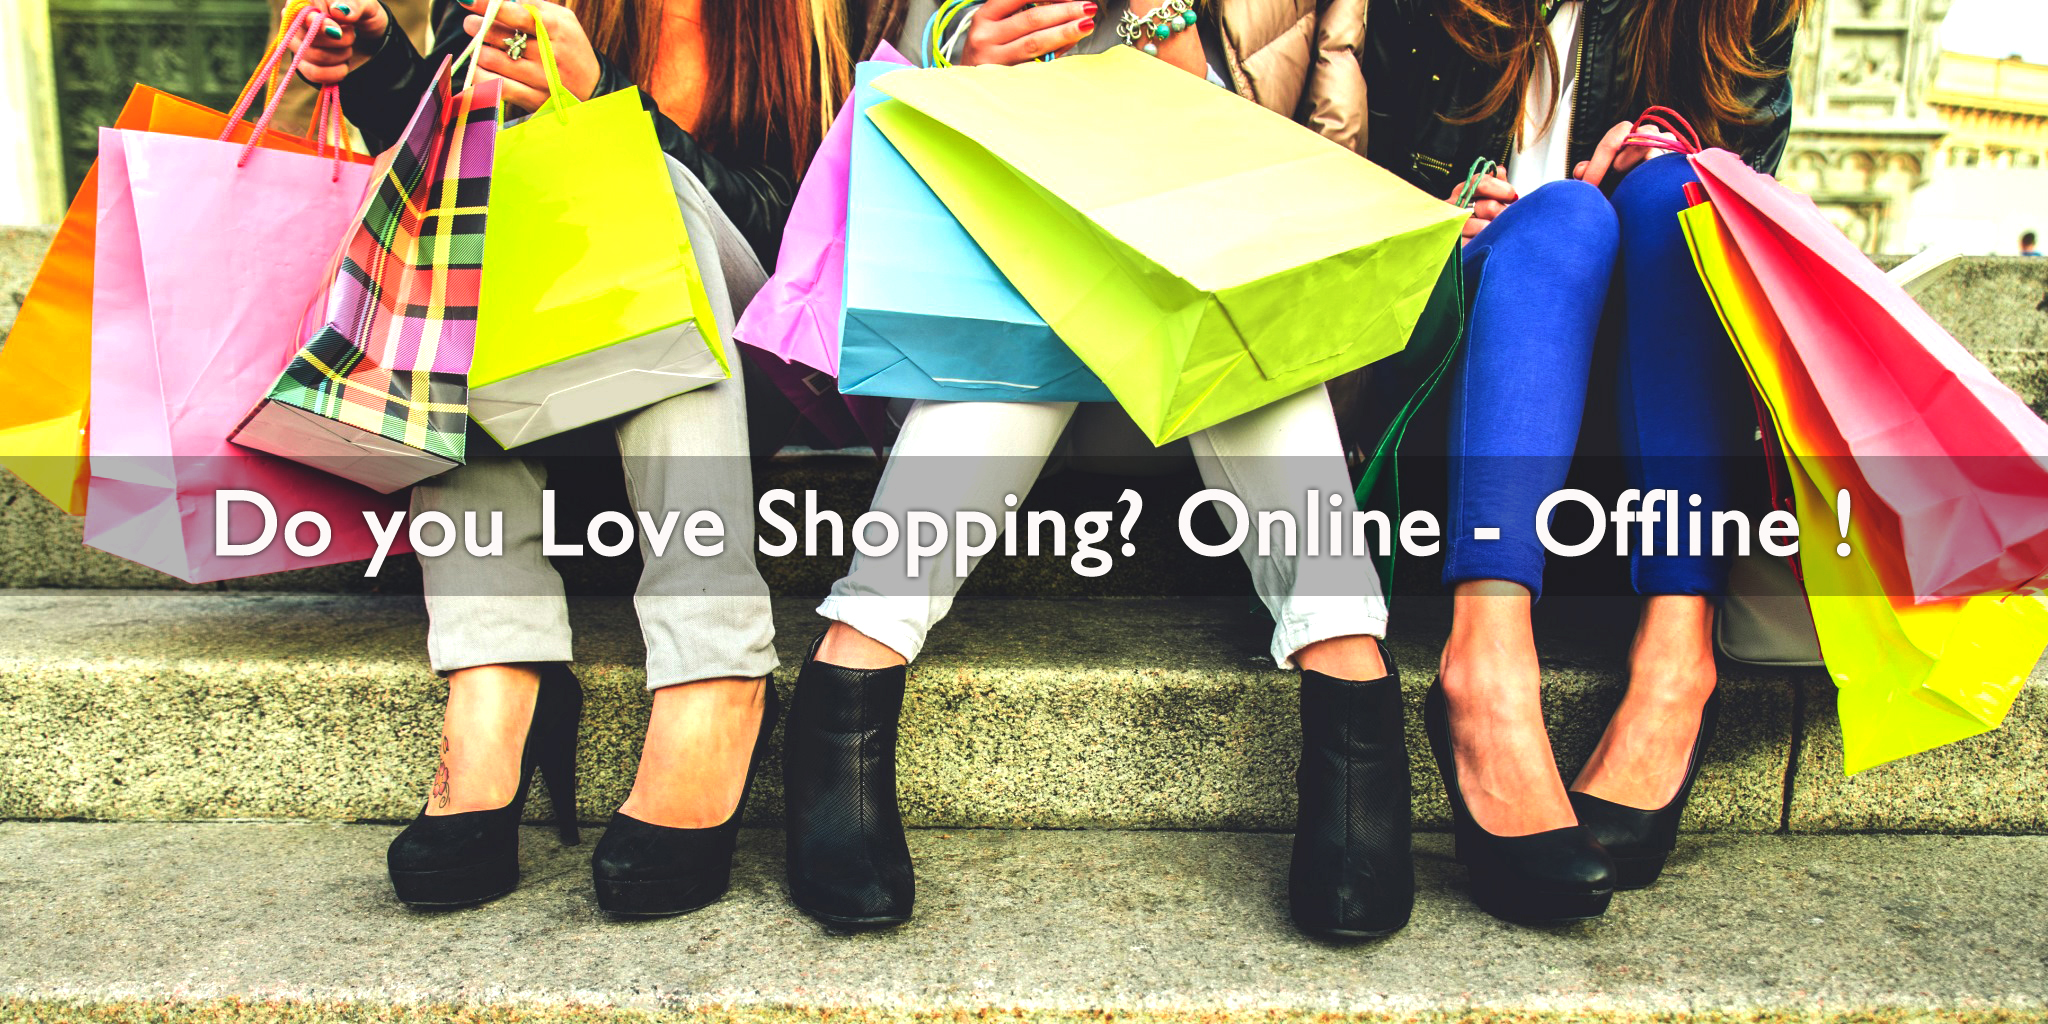 Do you Love Shopping?